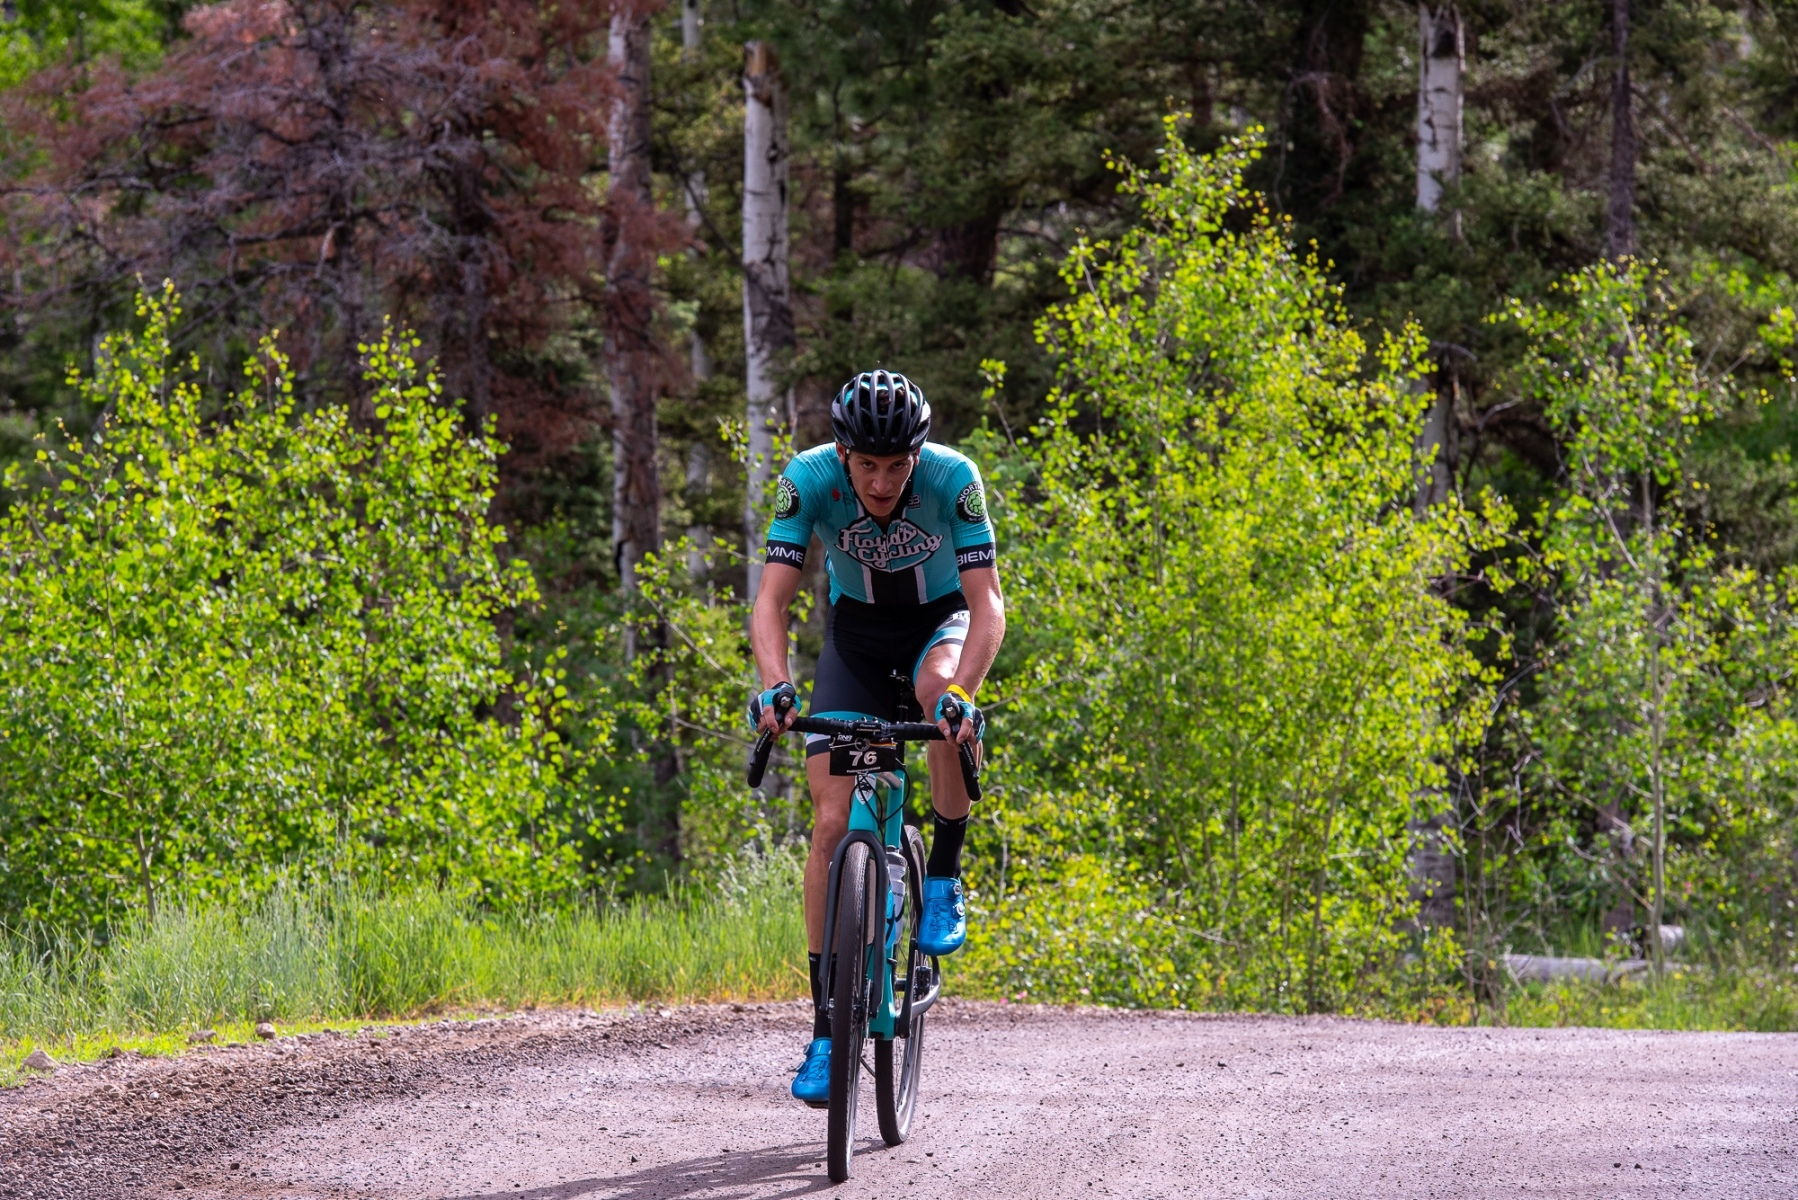 Noah Granigan (Floyd's Pro Cycling) on the early climb. Photo: Steven L. Sheffield